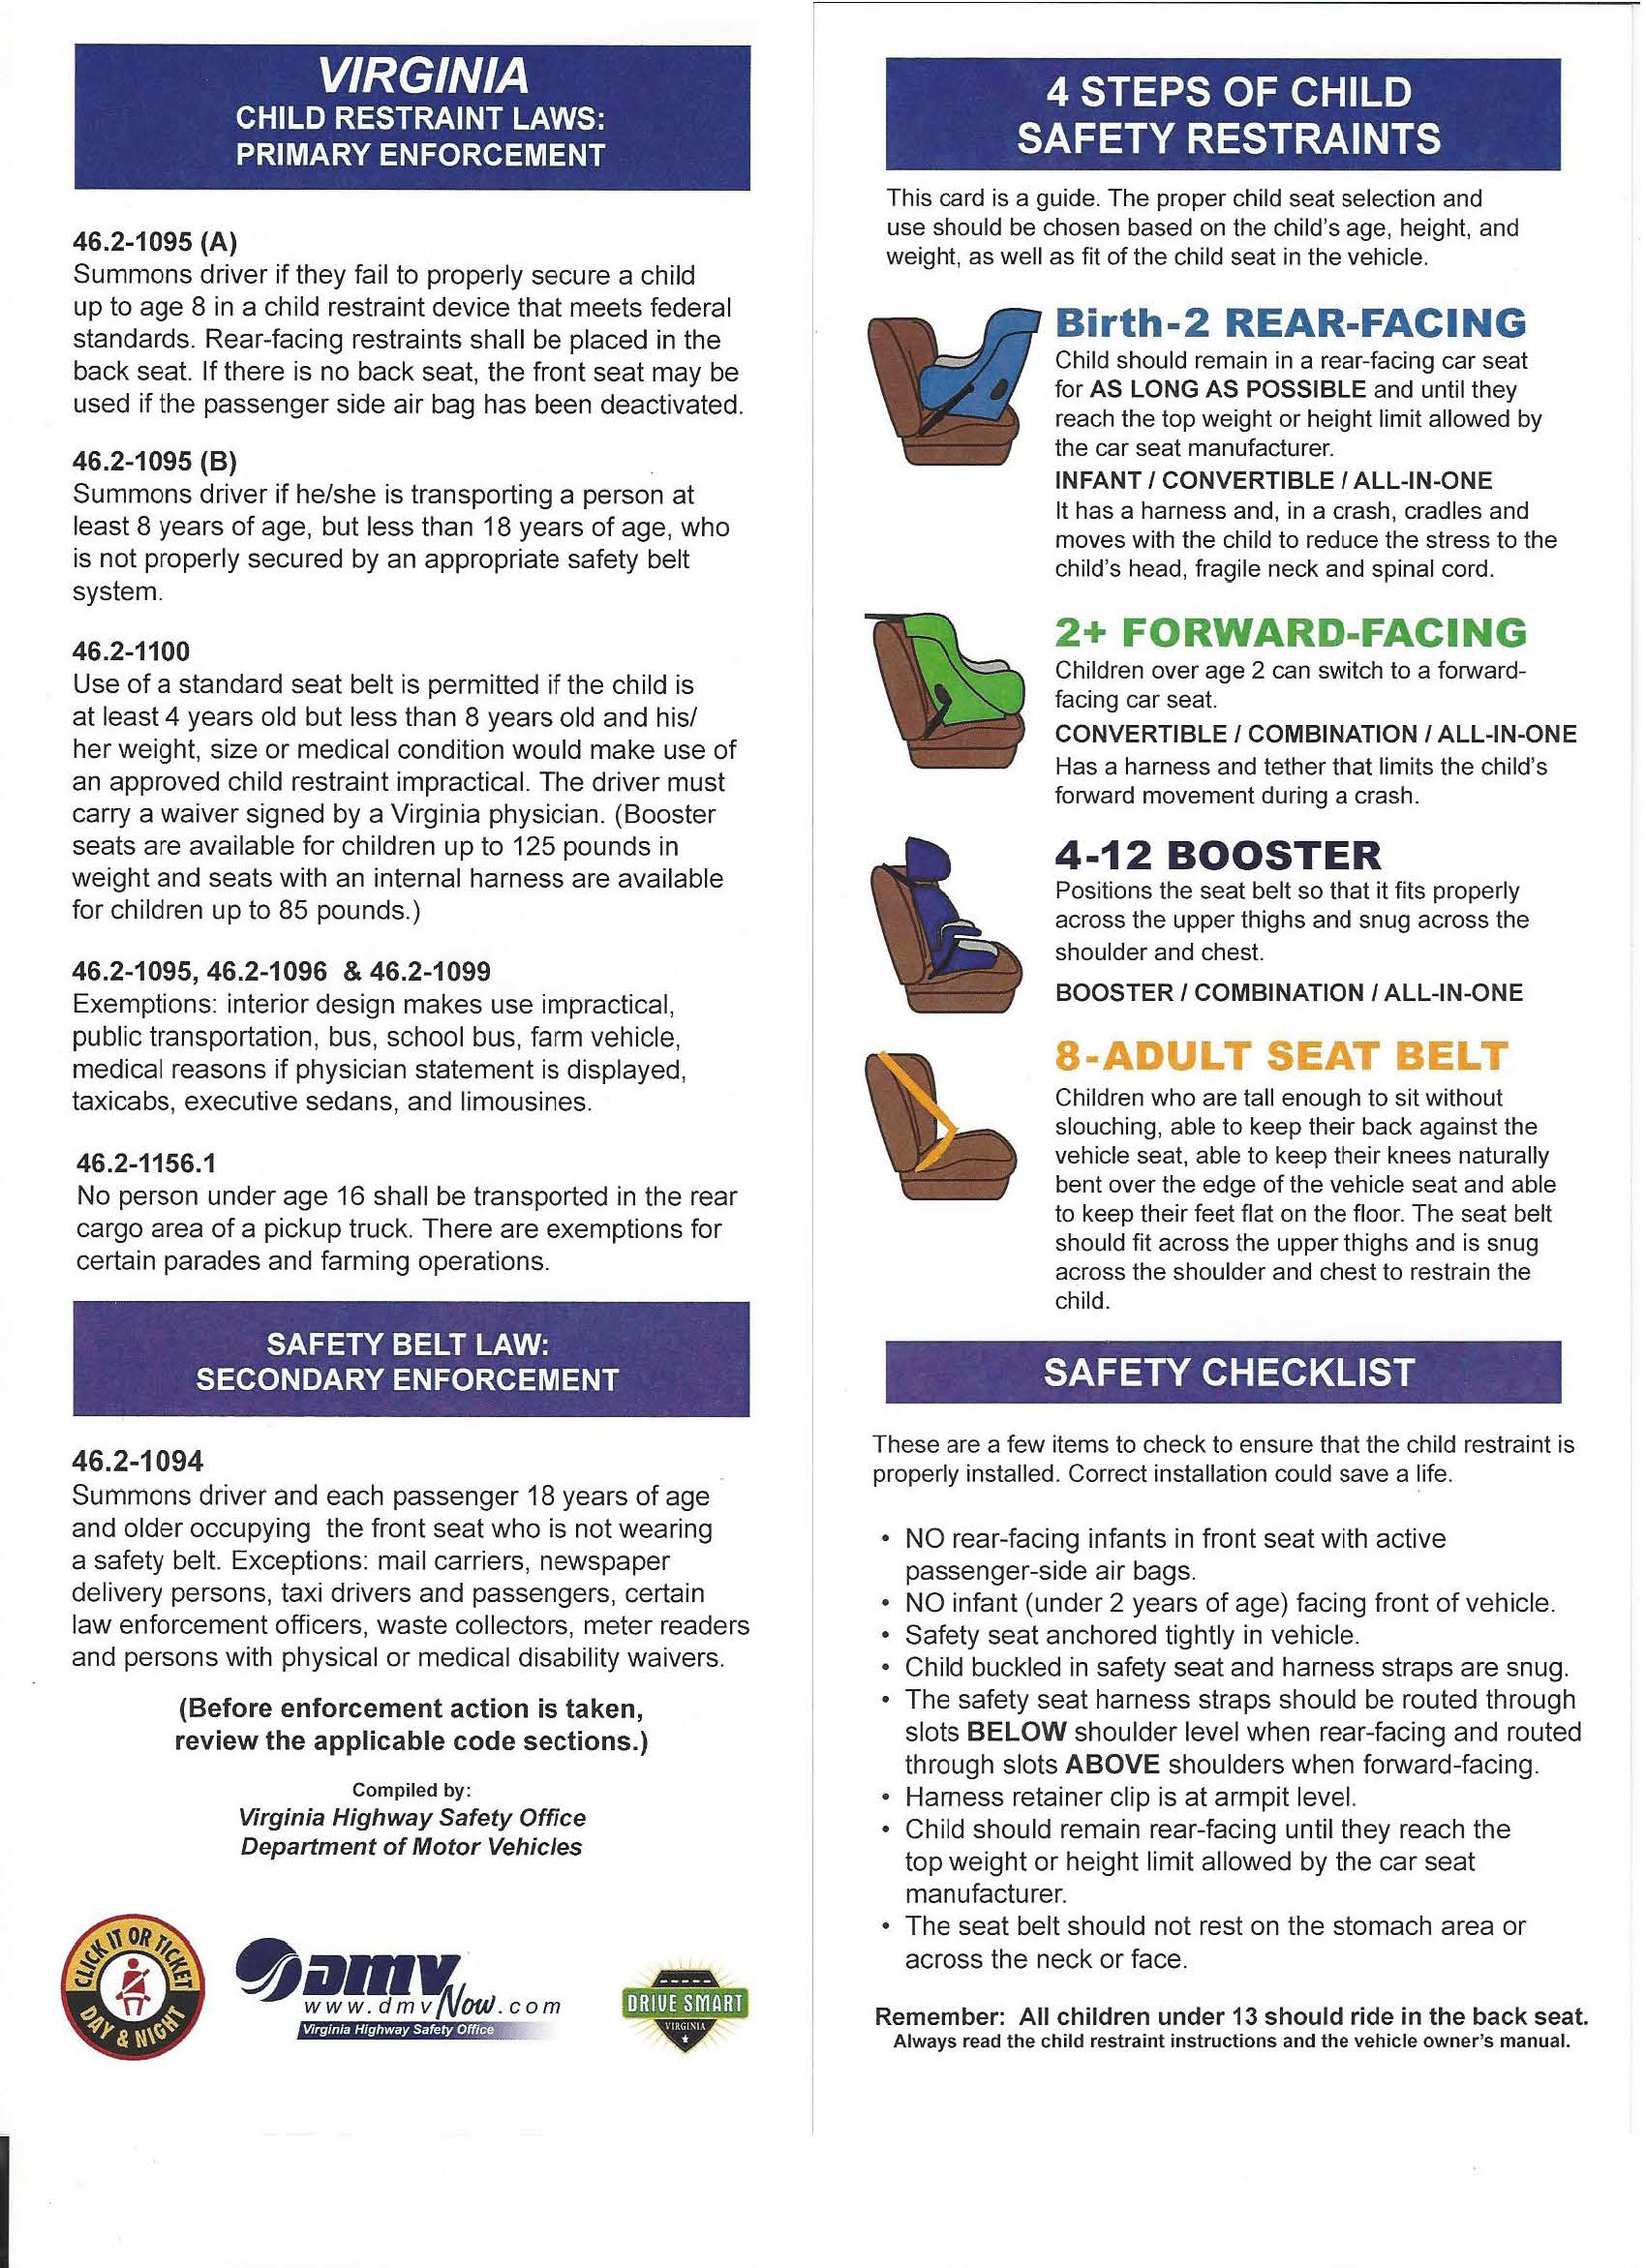 Safety Seats To Use Va Child Restraint Laws